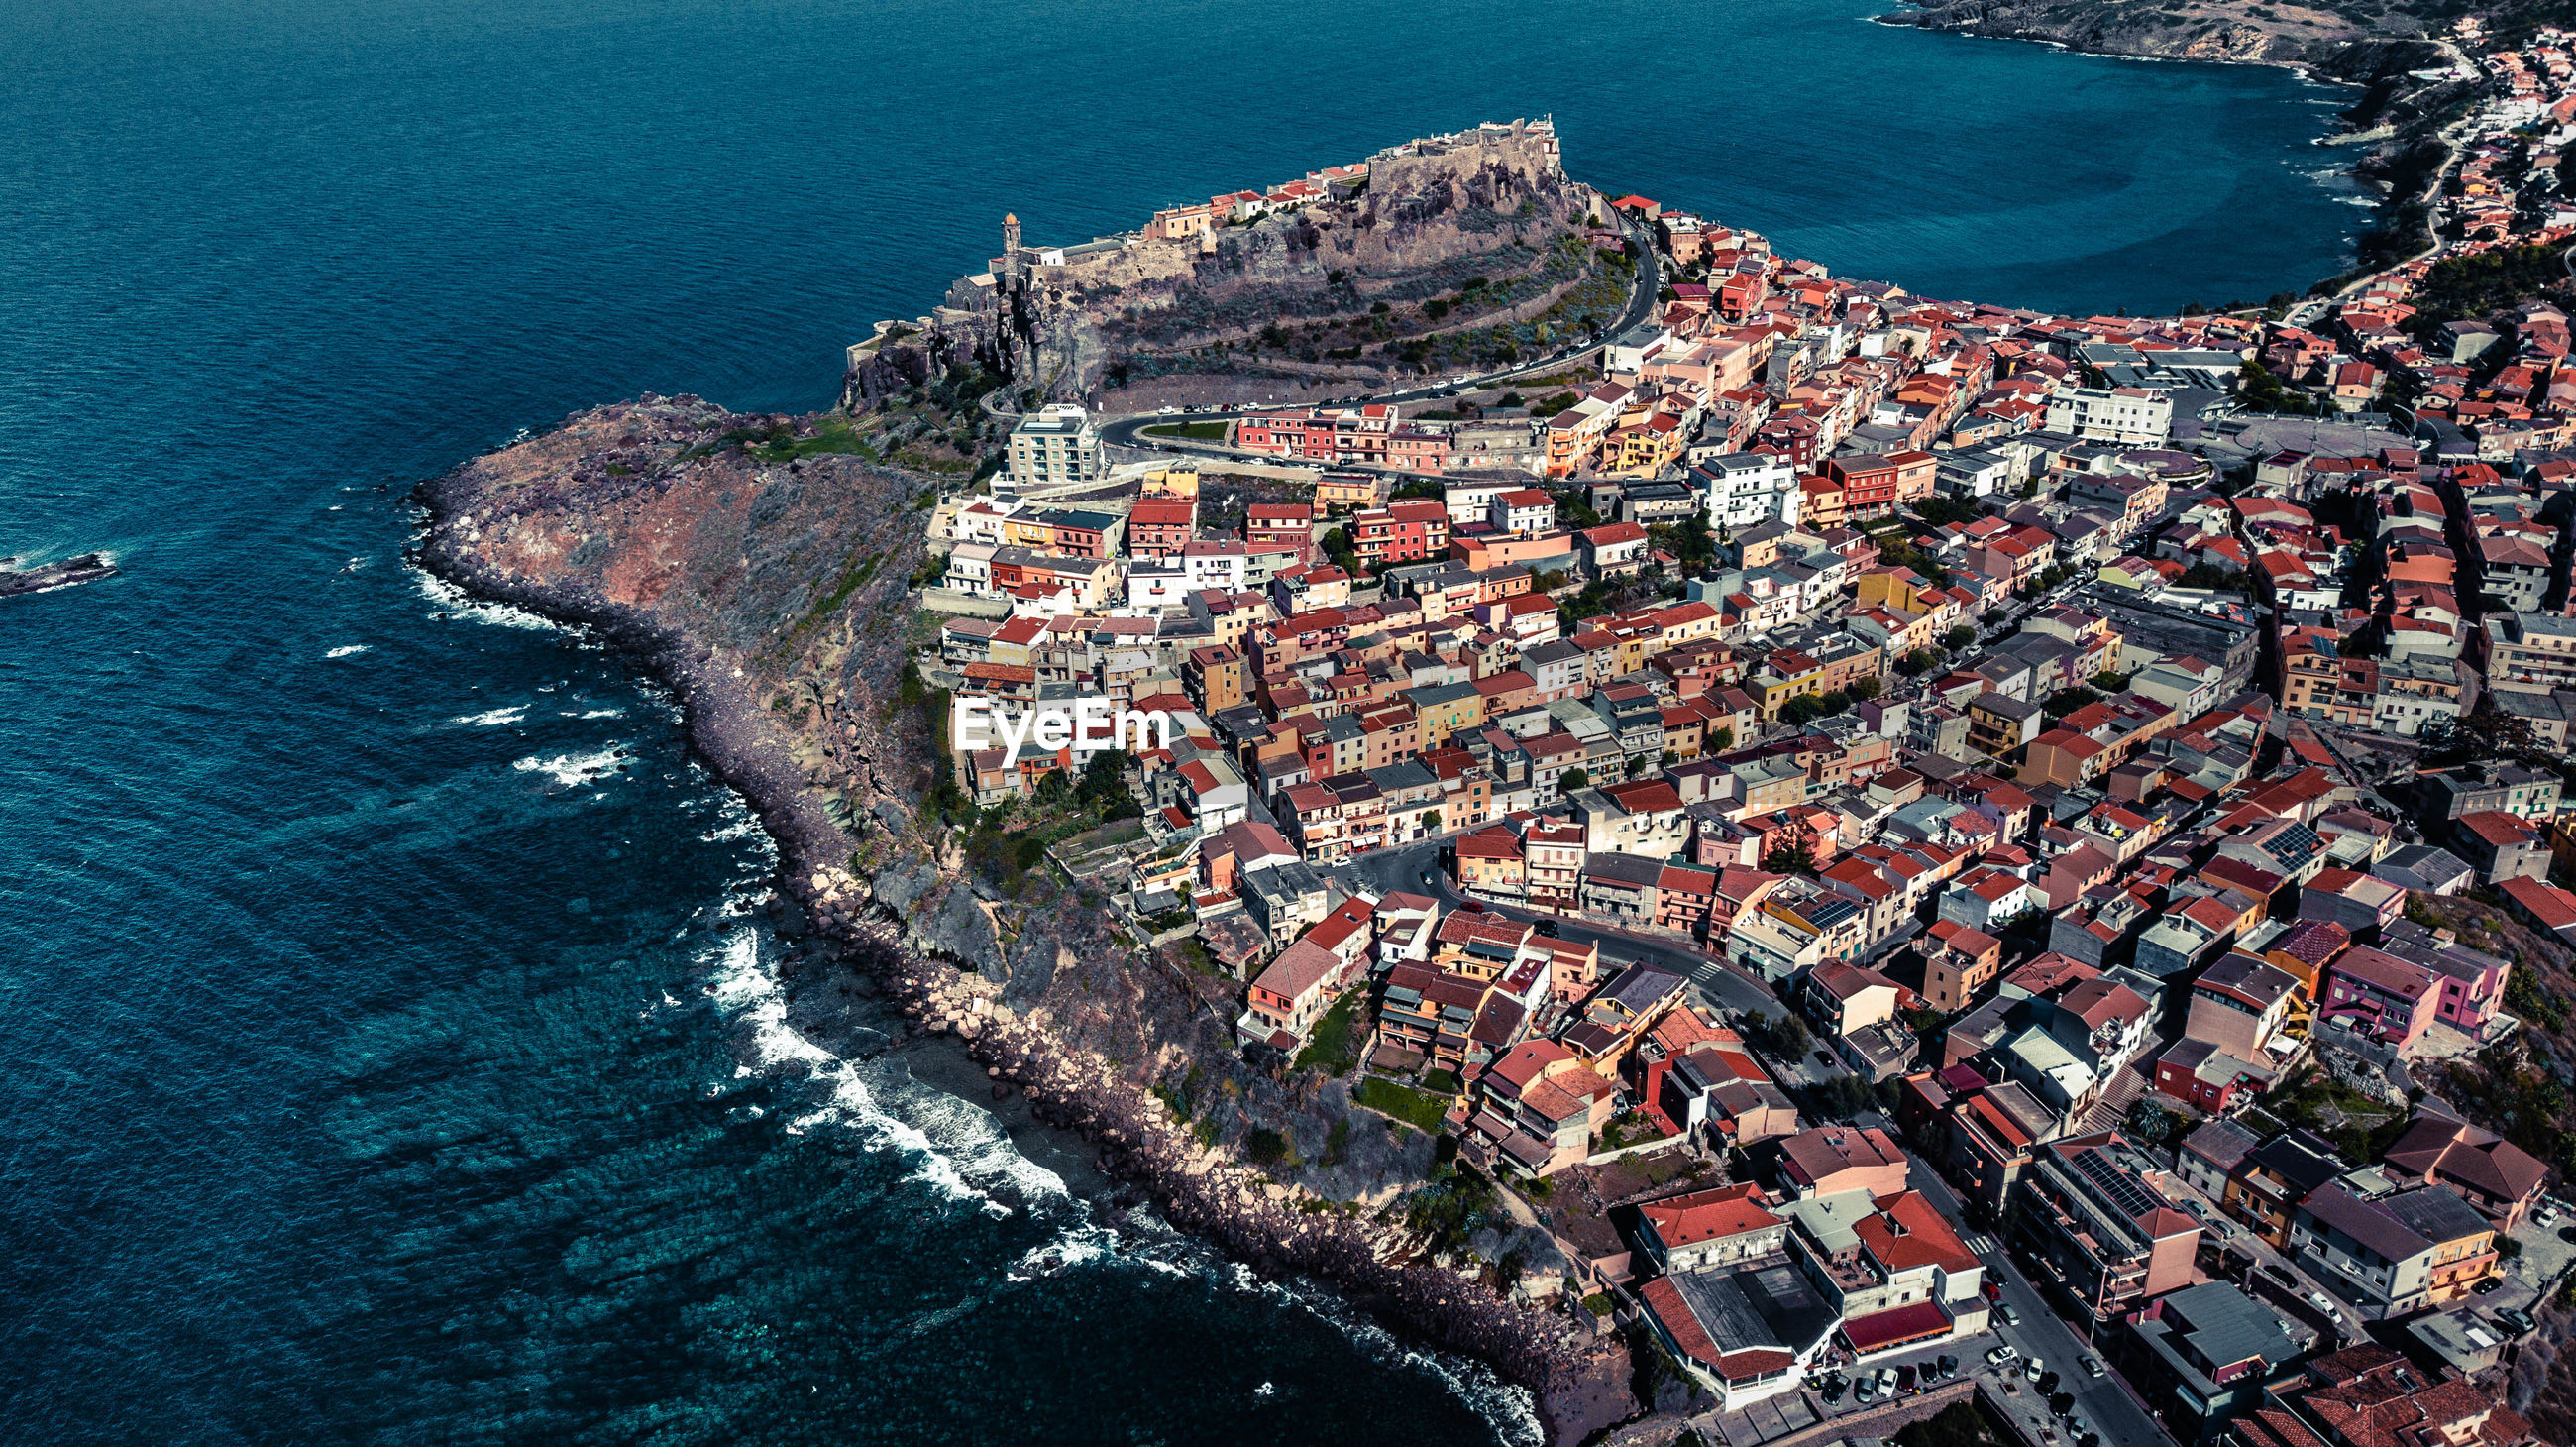 Aerial view of townscape by sea